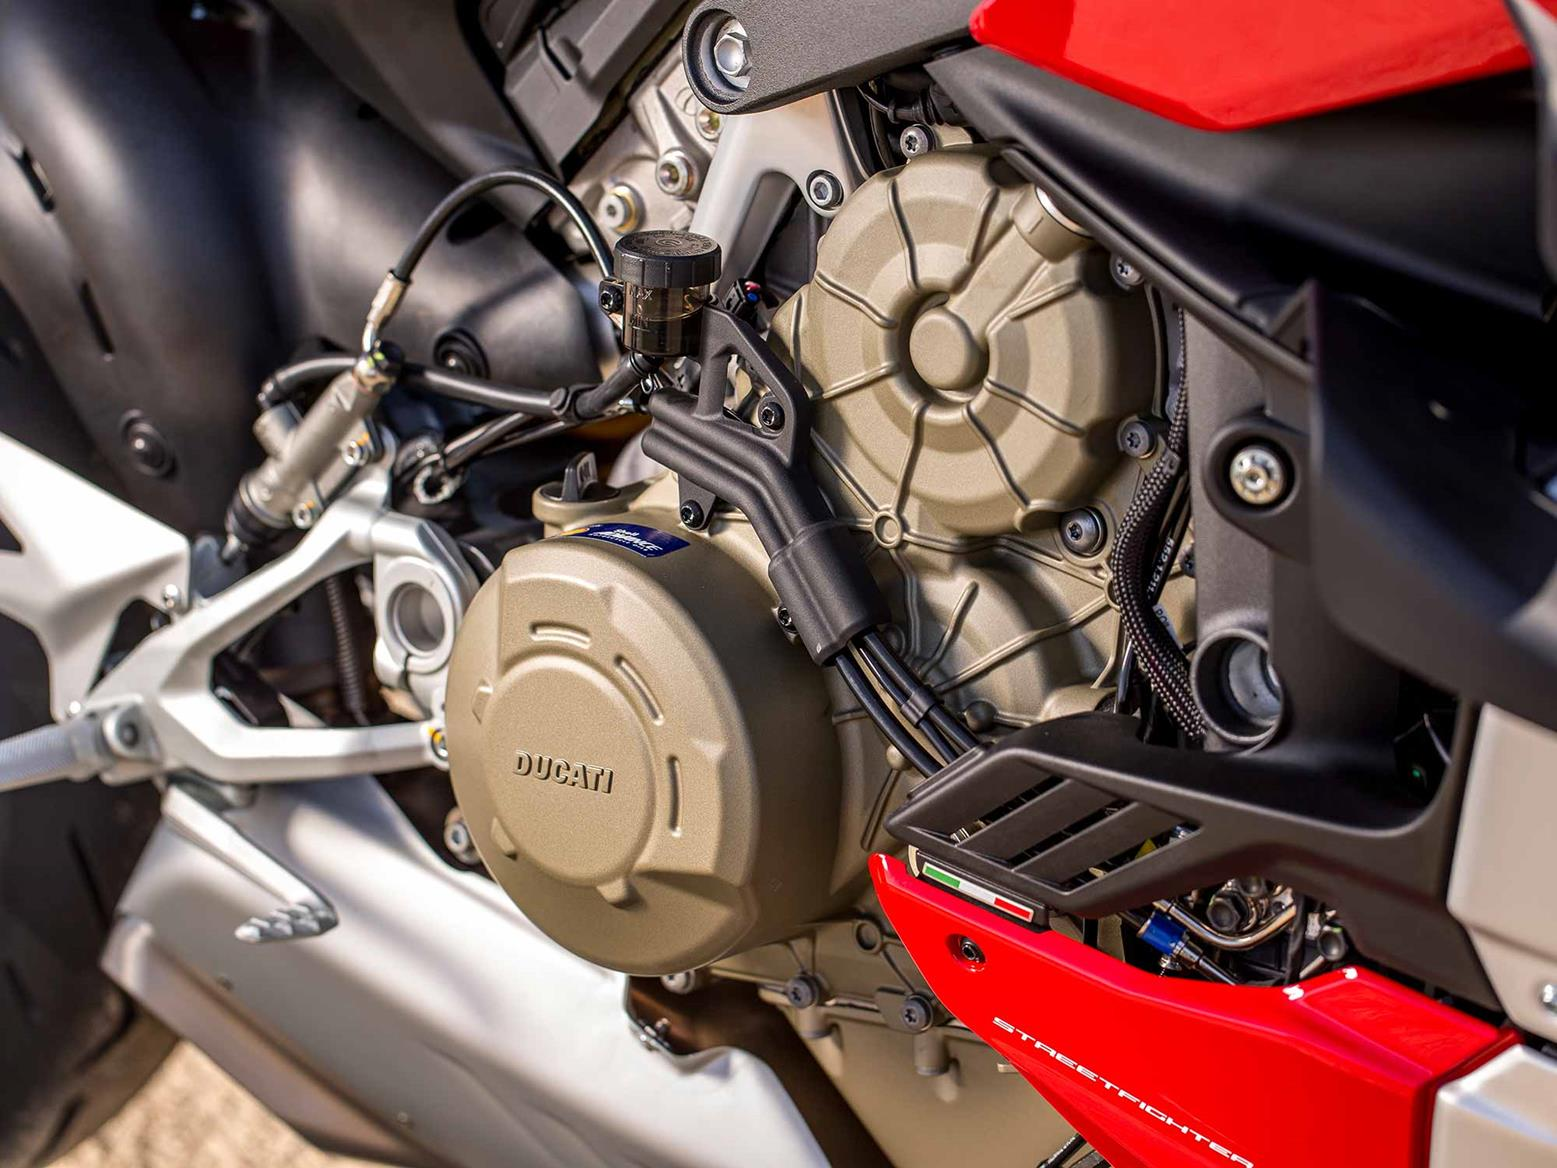 Ducati Streetfighter V4 S engine